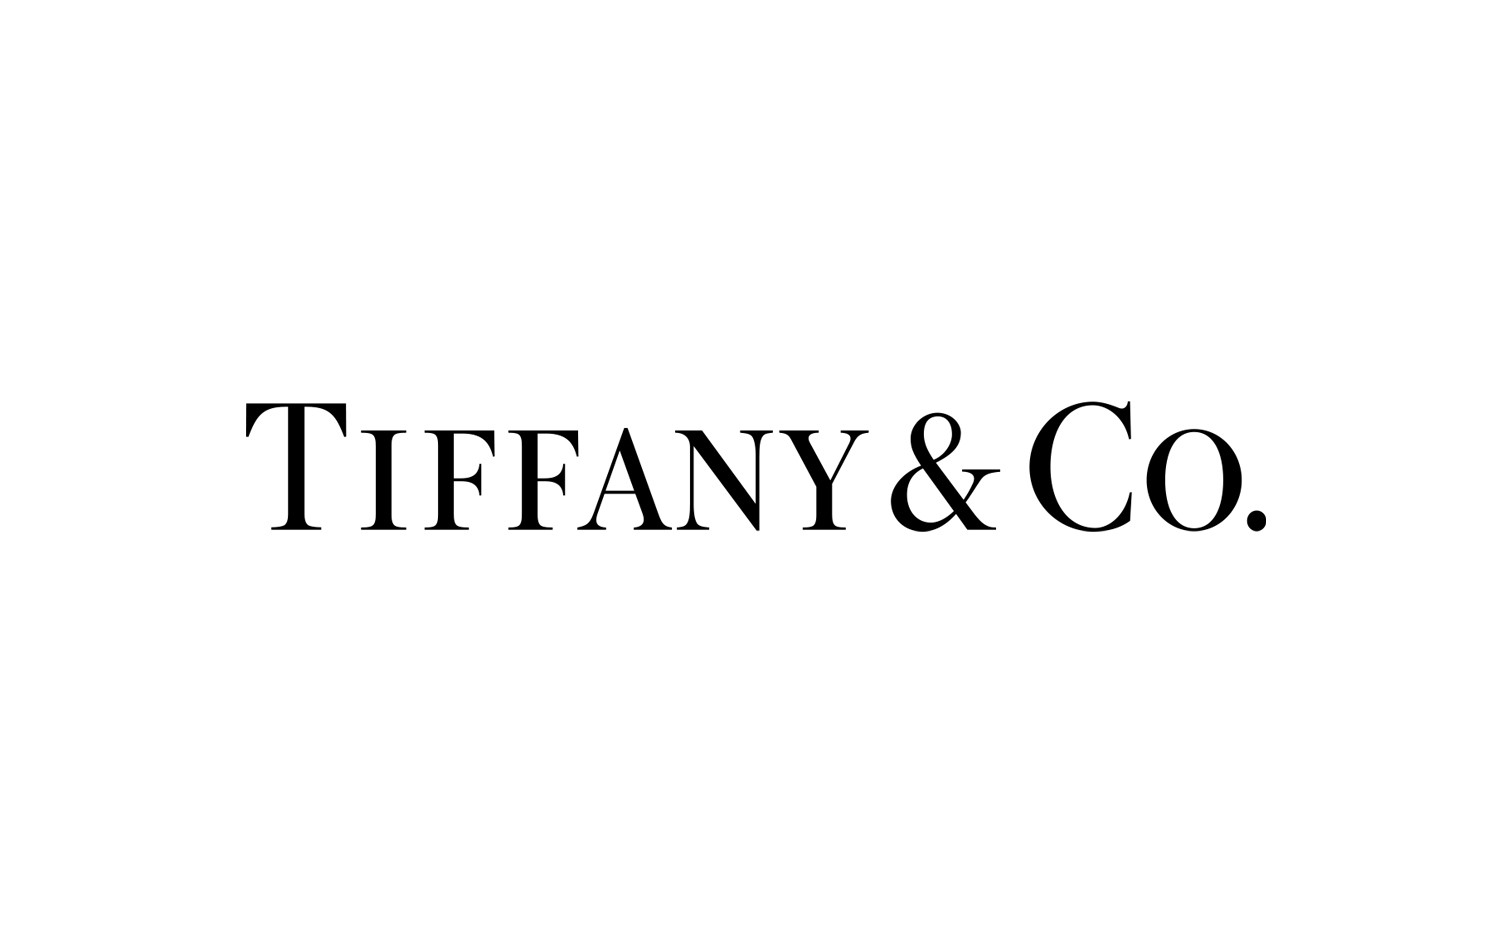 Tiffany & Co.jpg